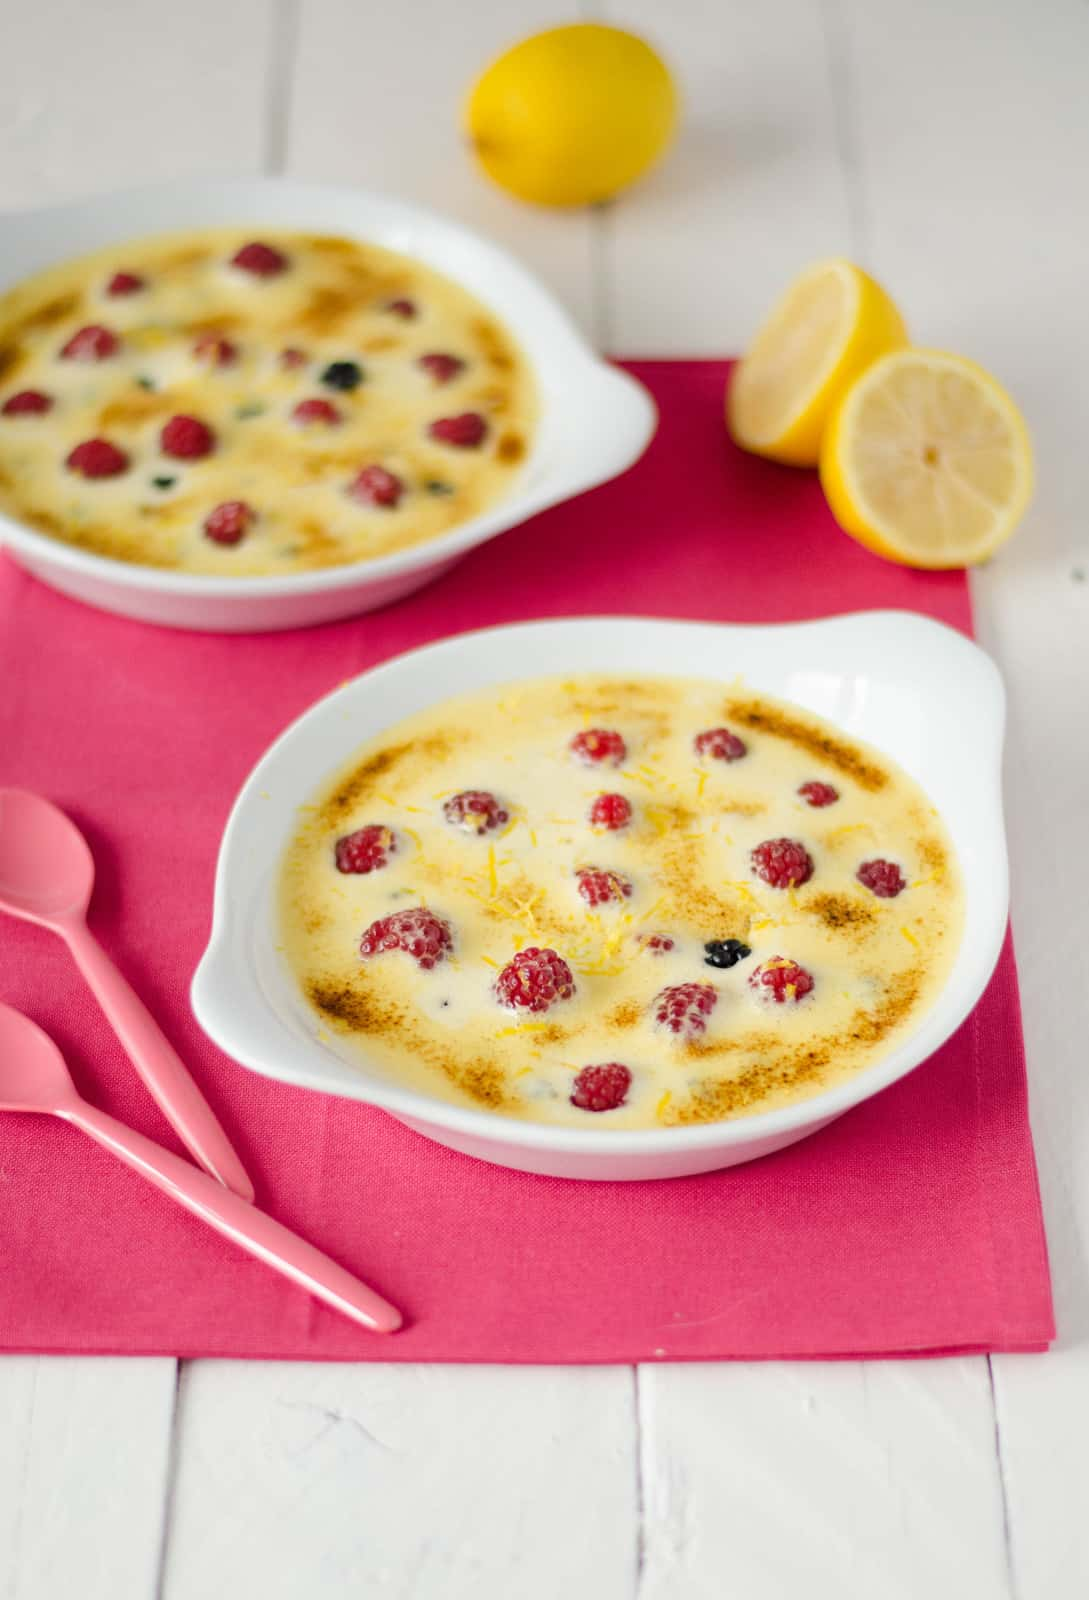 Gratins de fruits rouges au sabayon